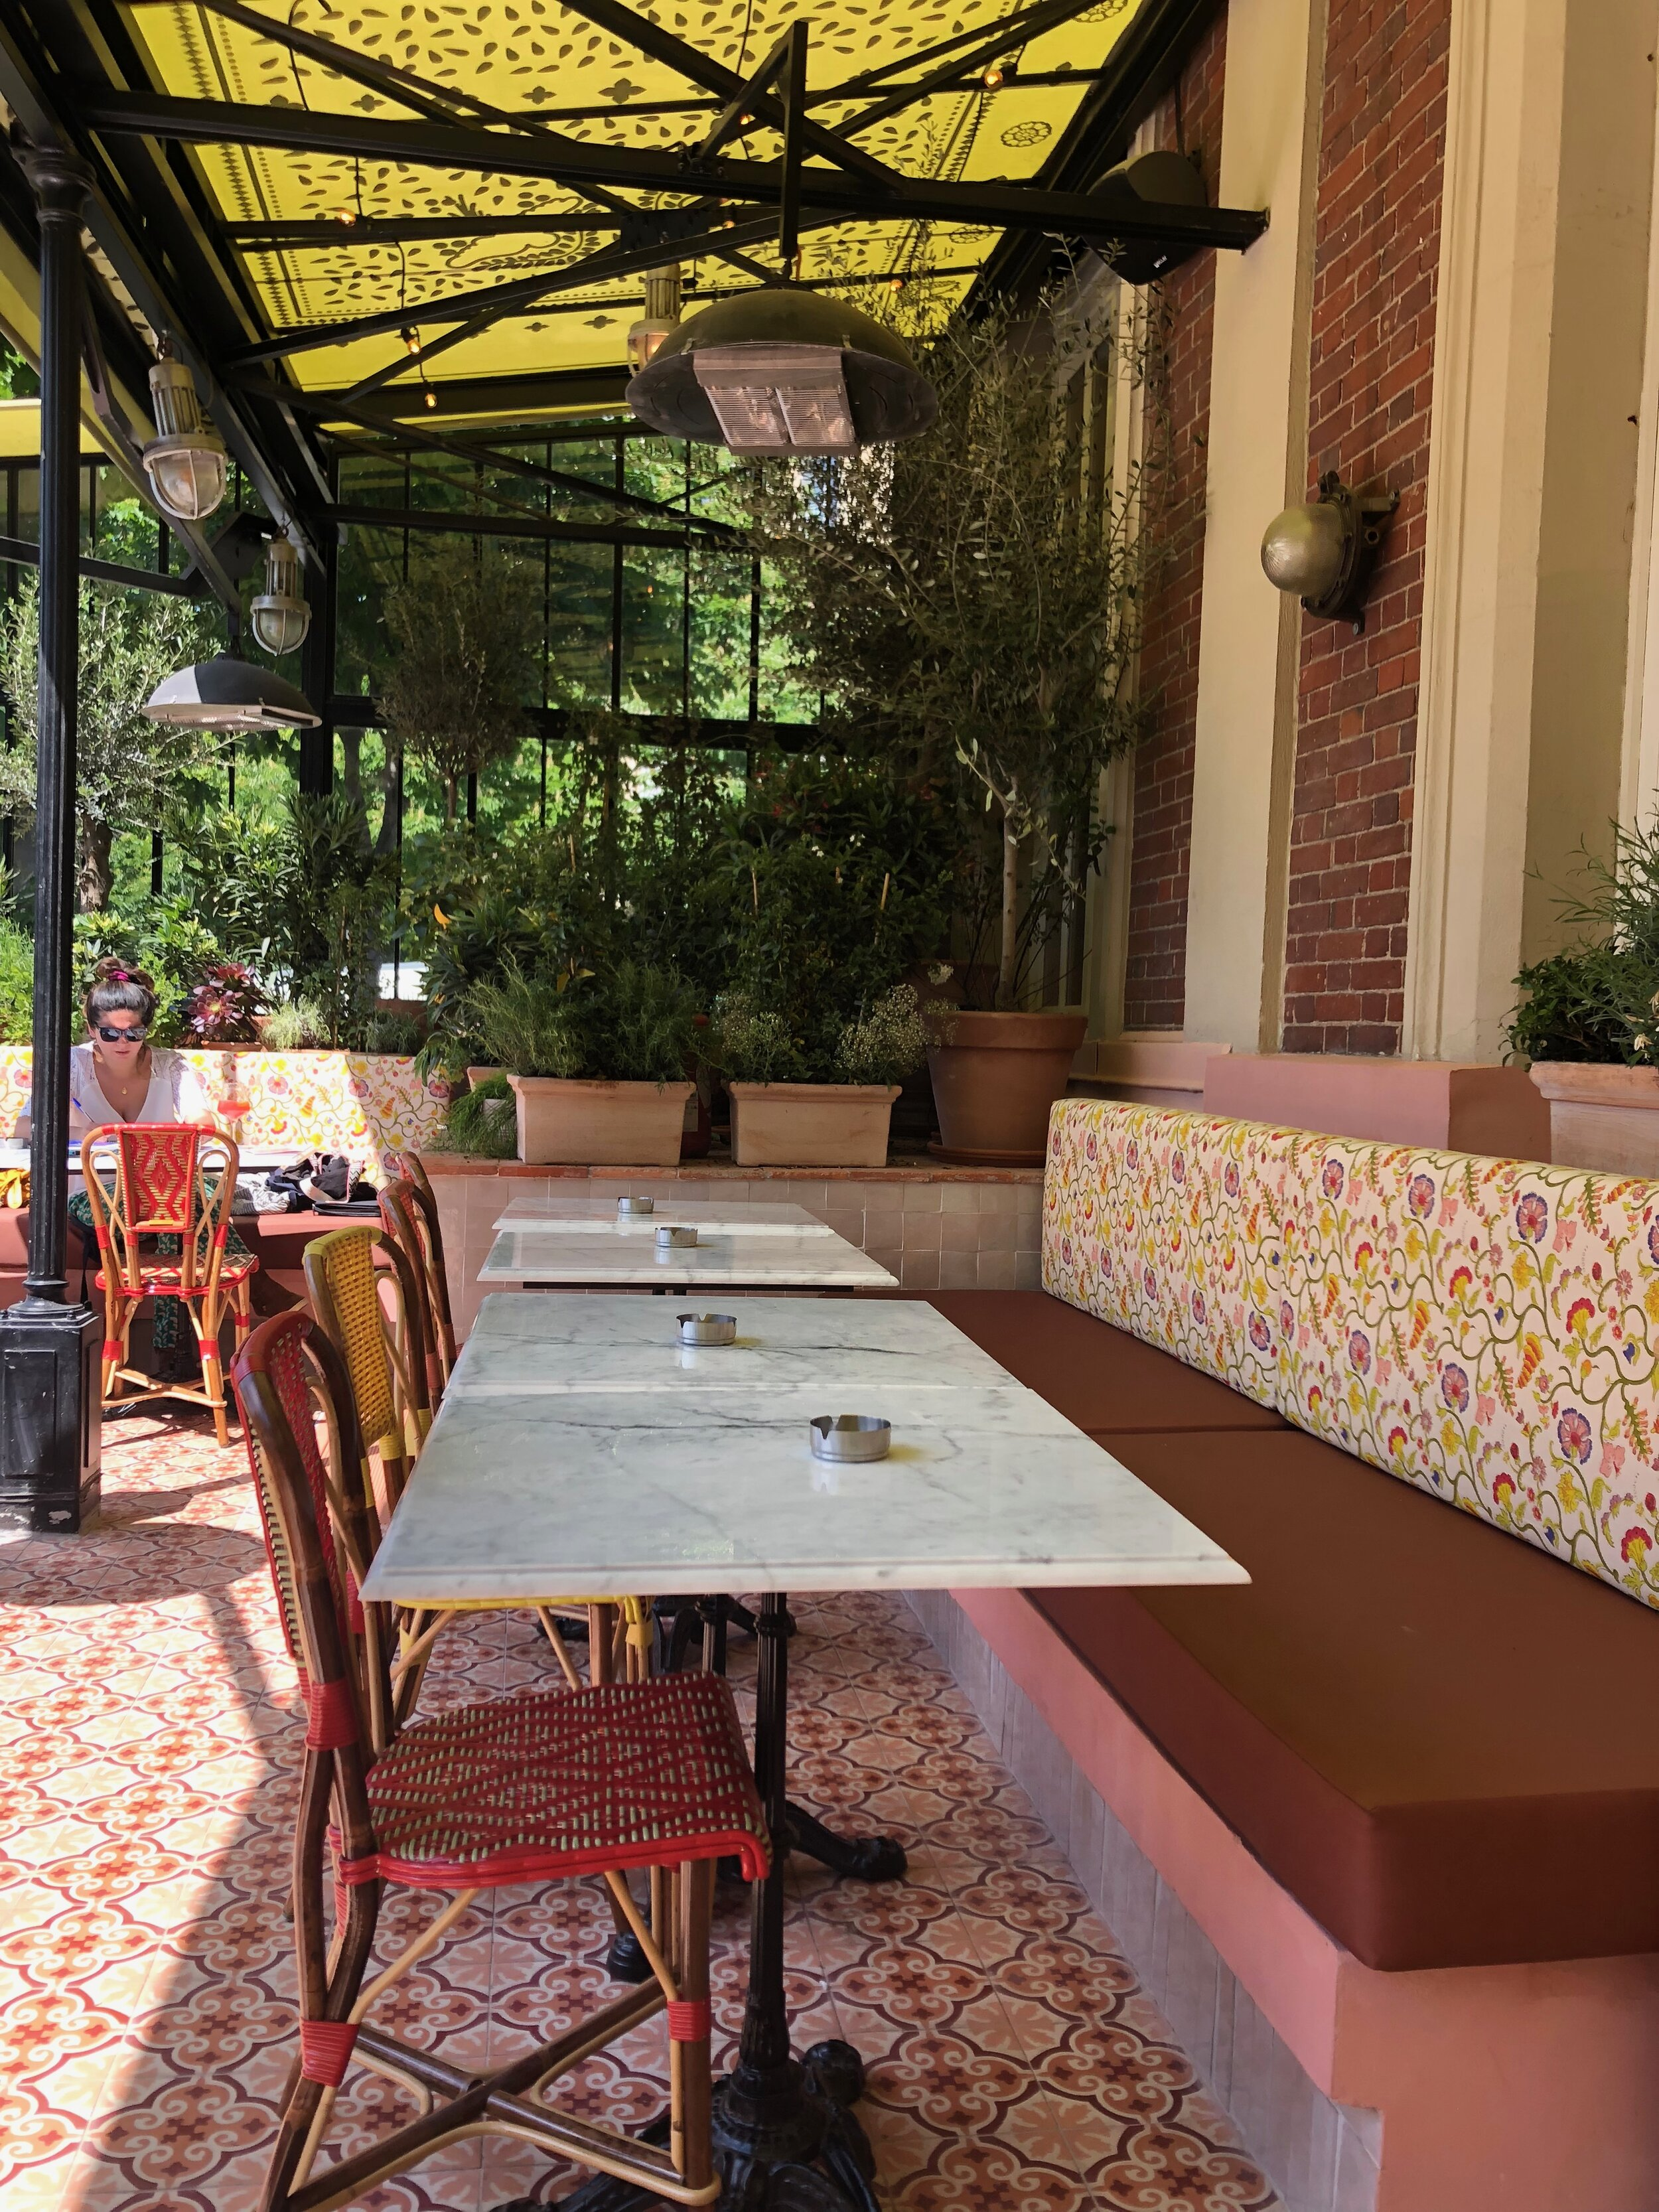 The terrasse has been covered with cement tiles and zelliges